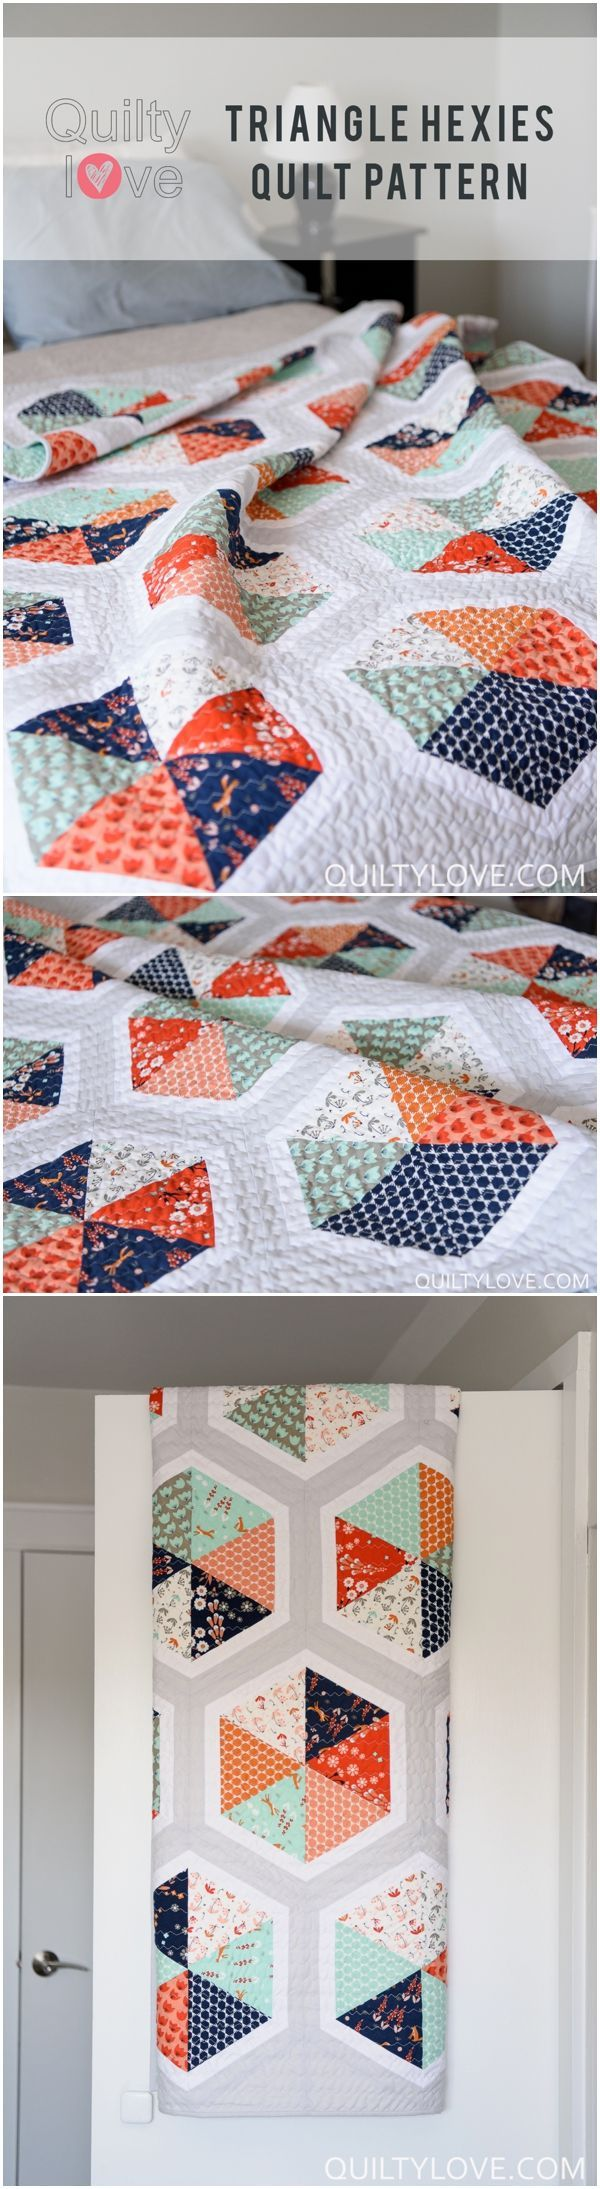 """Click on through to see more photos of Quilty Love's newest quilt pattern Triangle Hexie Quilt. This modern quilt is made using Cloud 9 Fabrics newest line FoxGlove. <a href=""""http://www.quiltylove.com"""" rel=""""nofollow"""" target=""""_blank"""">www.quiltylove.com</a>"""